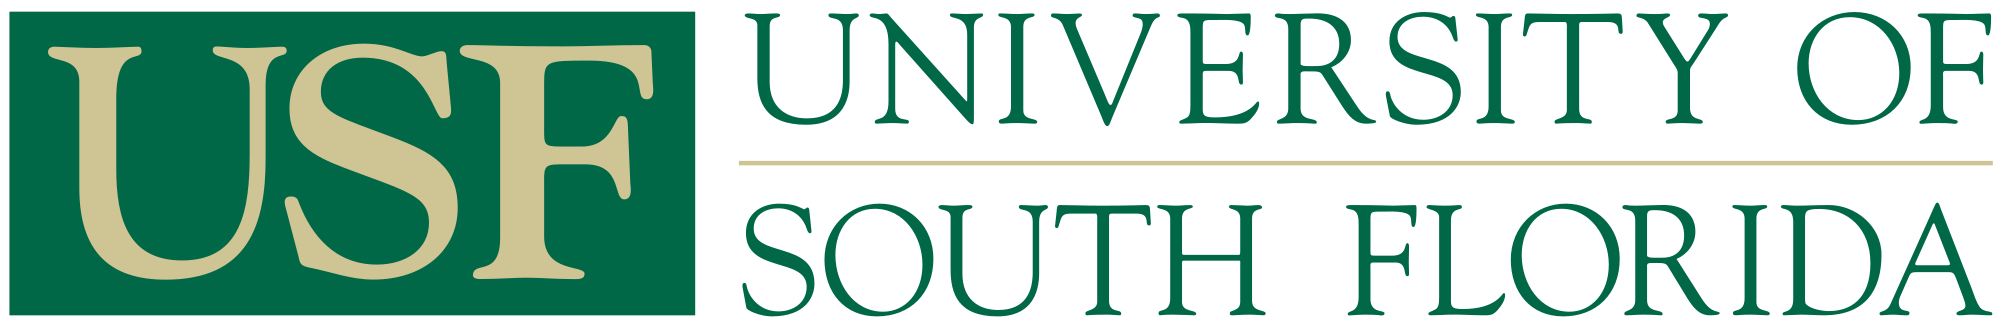 University of south florida logo png. File wordmark svg wikimedia